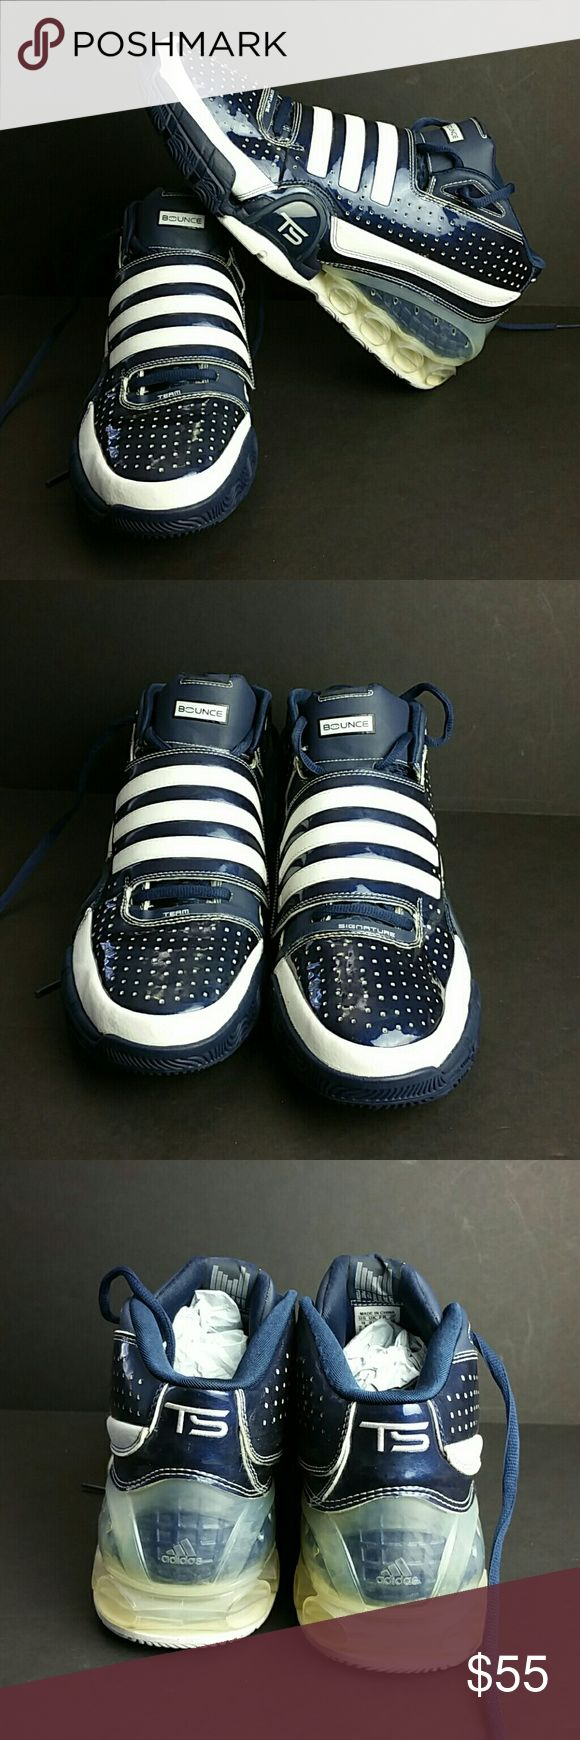 ADIDAS TS BOUNCE  SIGNATURE MEN'S SHOES VERY CLEAN INSIDE-OUT   SKE # KU5 ADIDAS Shoes Athletic Shoes